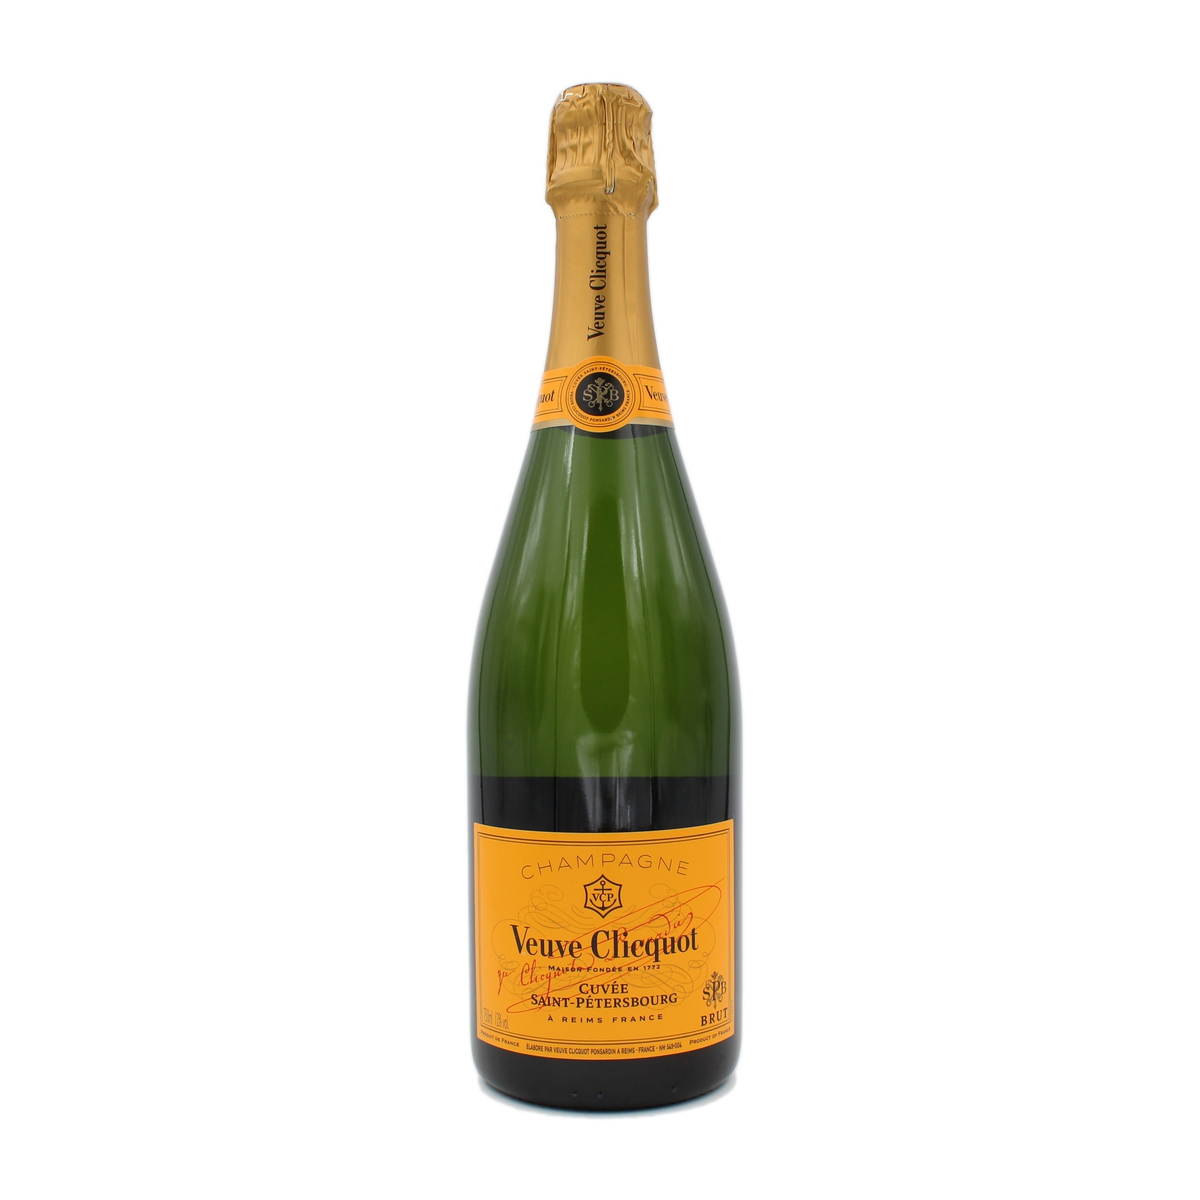 Brut Yellow Label Cuvee Saint-Petersbourg Veuve Clicquot